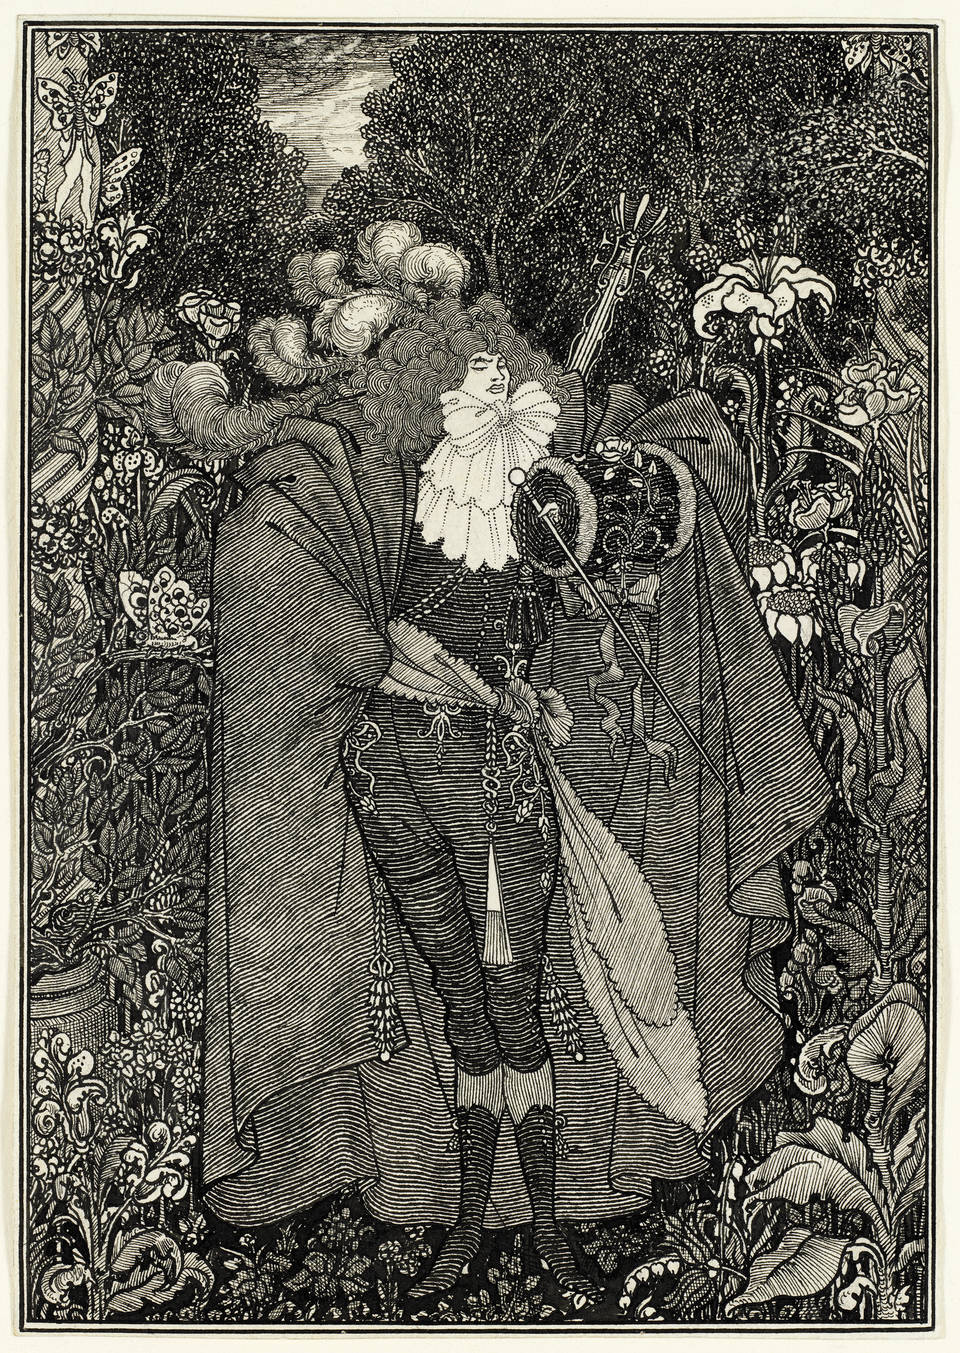 Aubrey Beardsley, Abbé ('Under the Hill'), published in The Savoy in 1896. © Victoria and Albert Museum, London